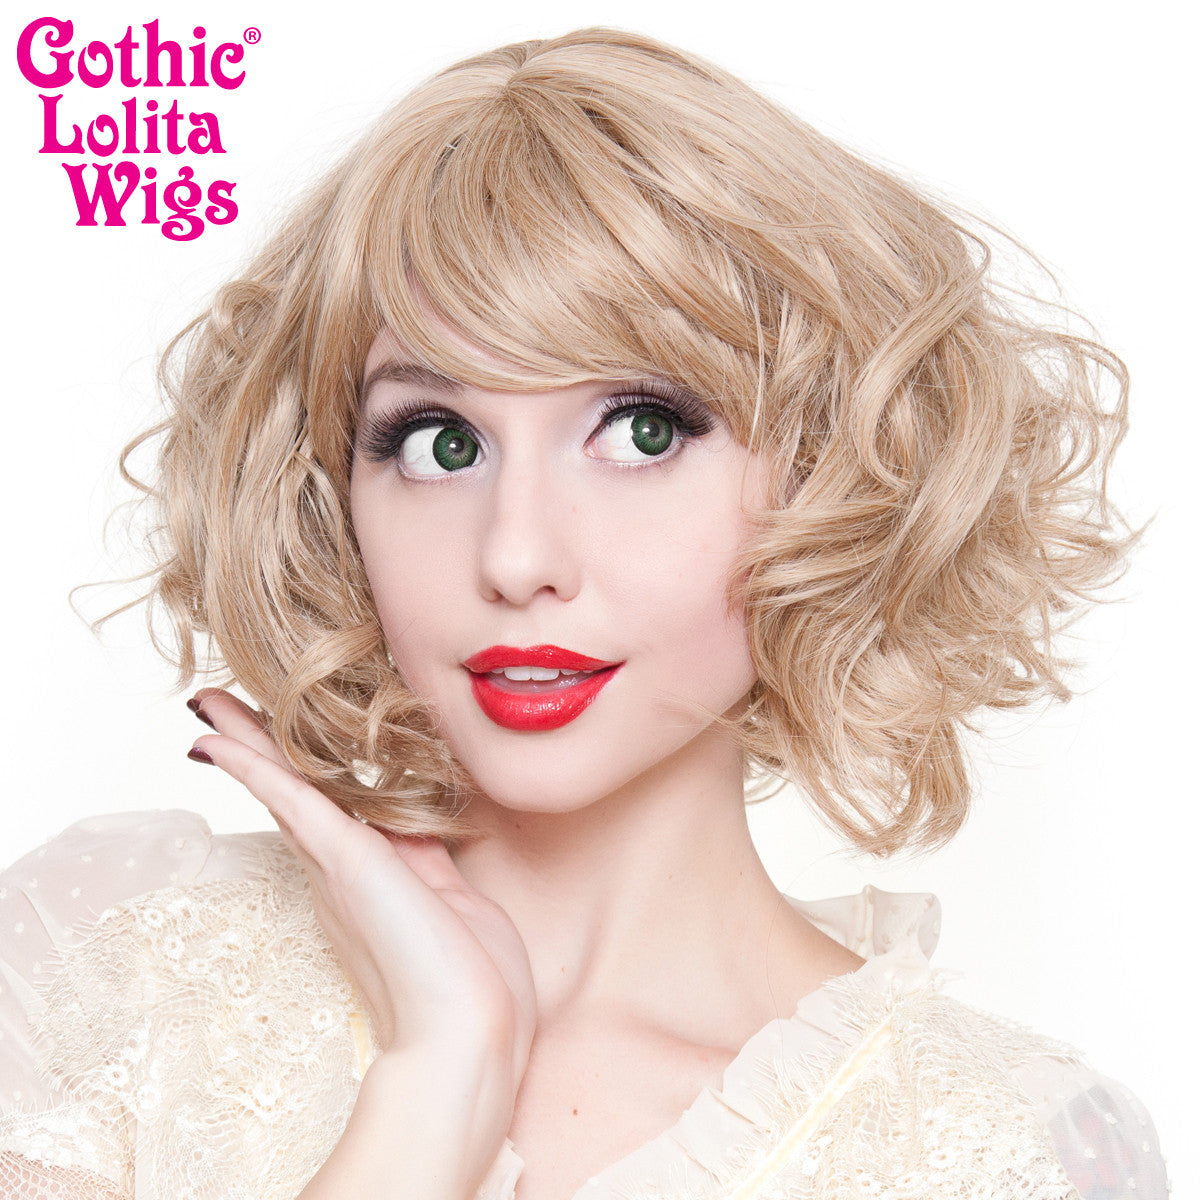 Gothic Lolita Wigs® Gamine Collection - Light Medium Blonde Mix -00405